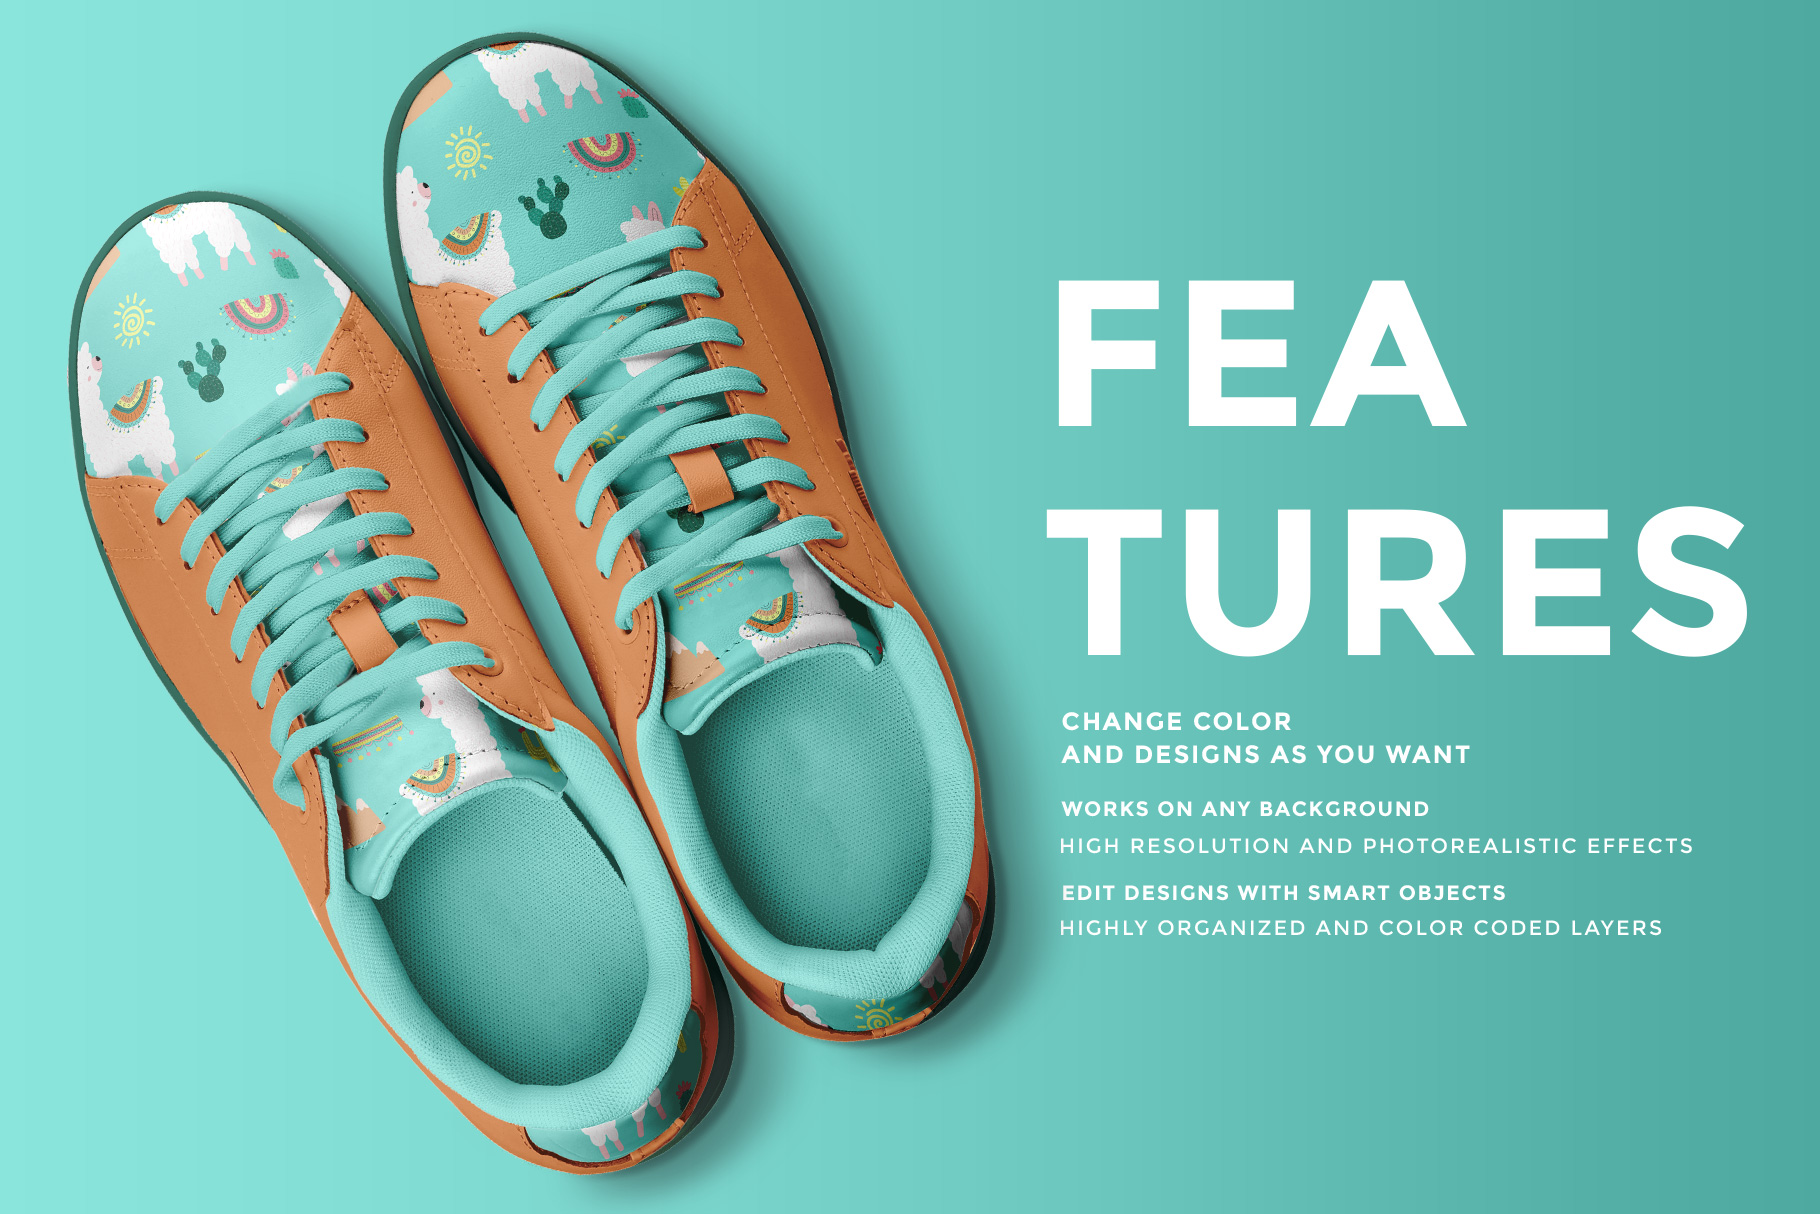 features of the top view trendy sneakers mockup